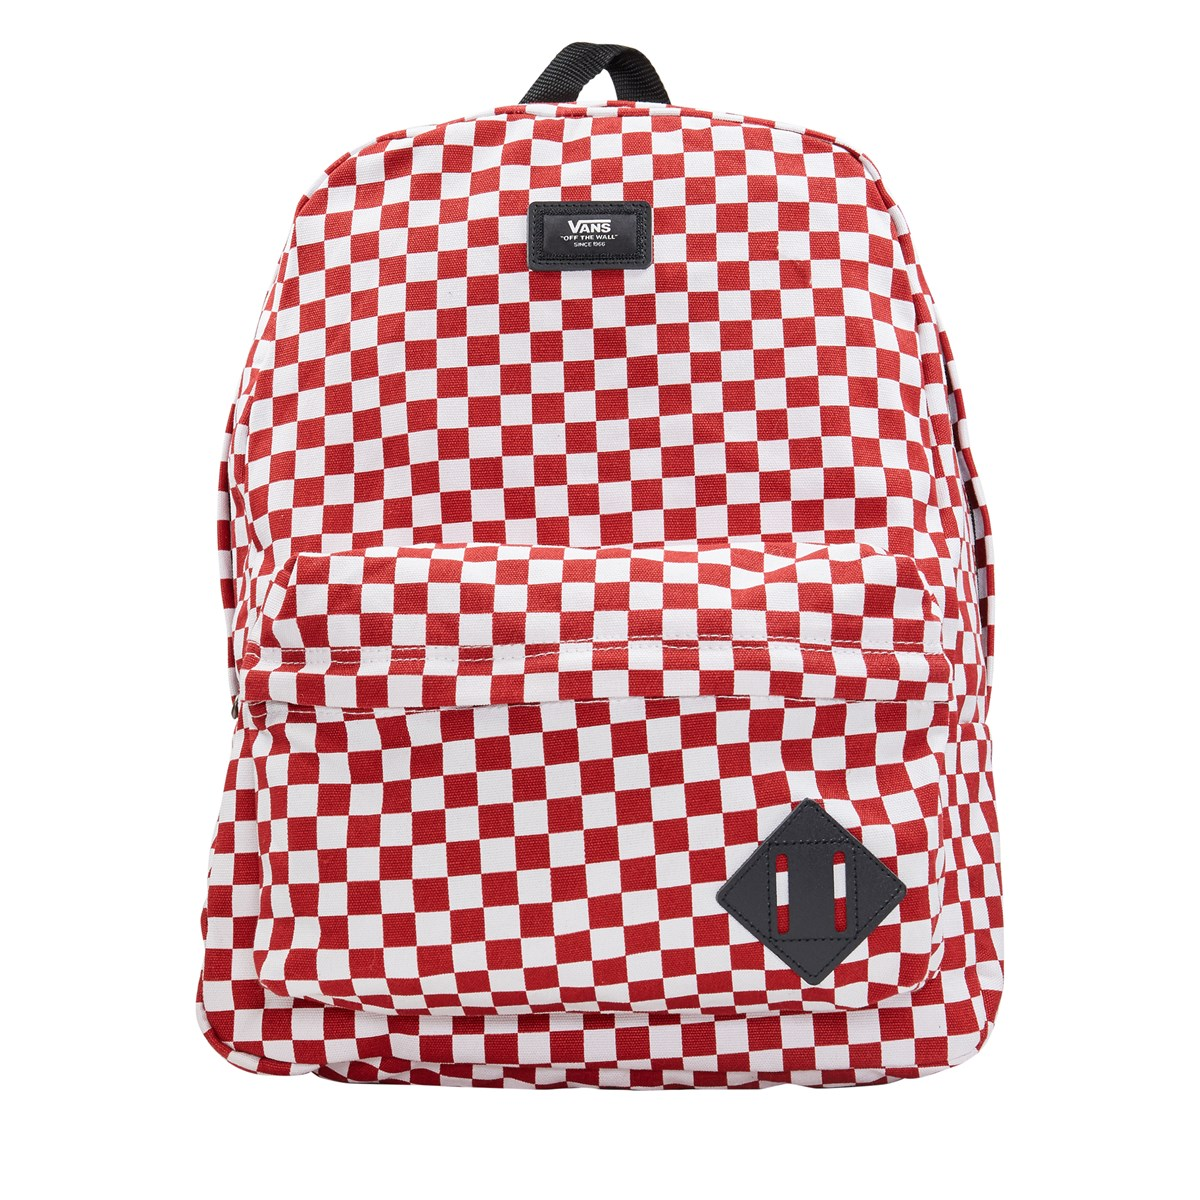 3fa9d240b0f4 Old Skool II White Red Checkerboard Backpack. Previous. default view ...